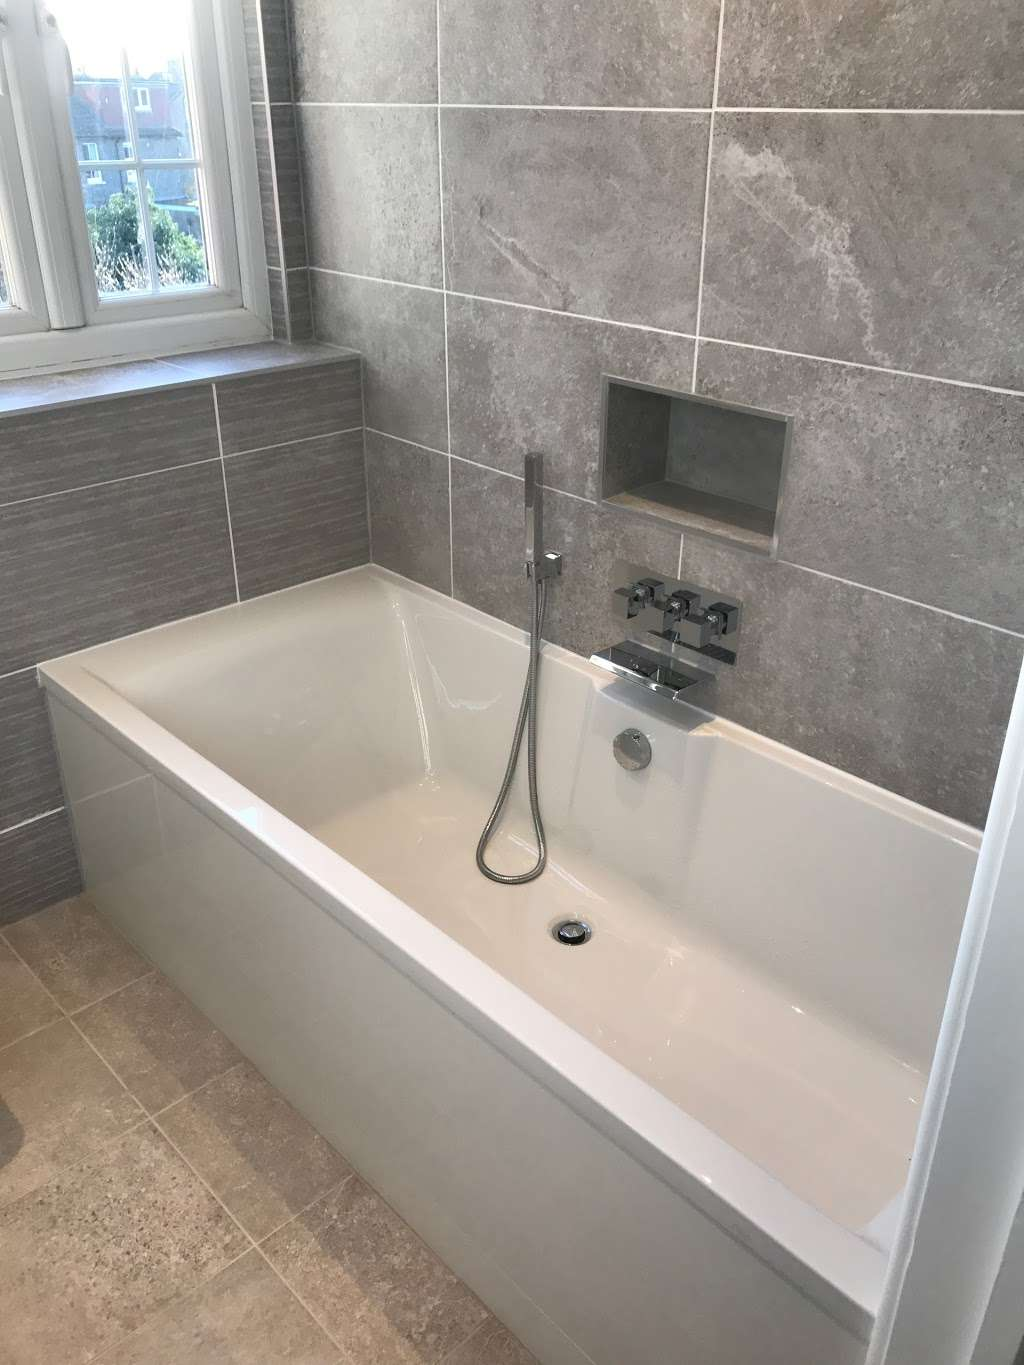 Easy You - plumber  | Photo 4 of 5 | Address: Holly lodge, Lodge lane, Redhill RH1 5DH, UK | Phone: 07736 764725